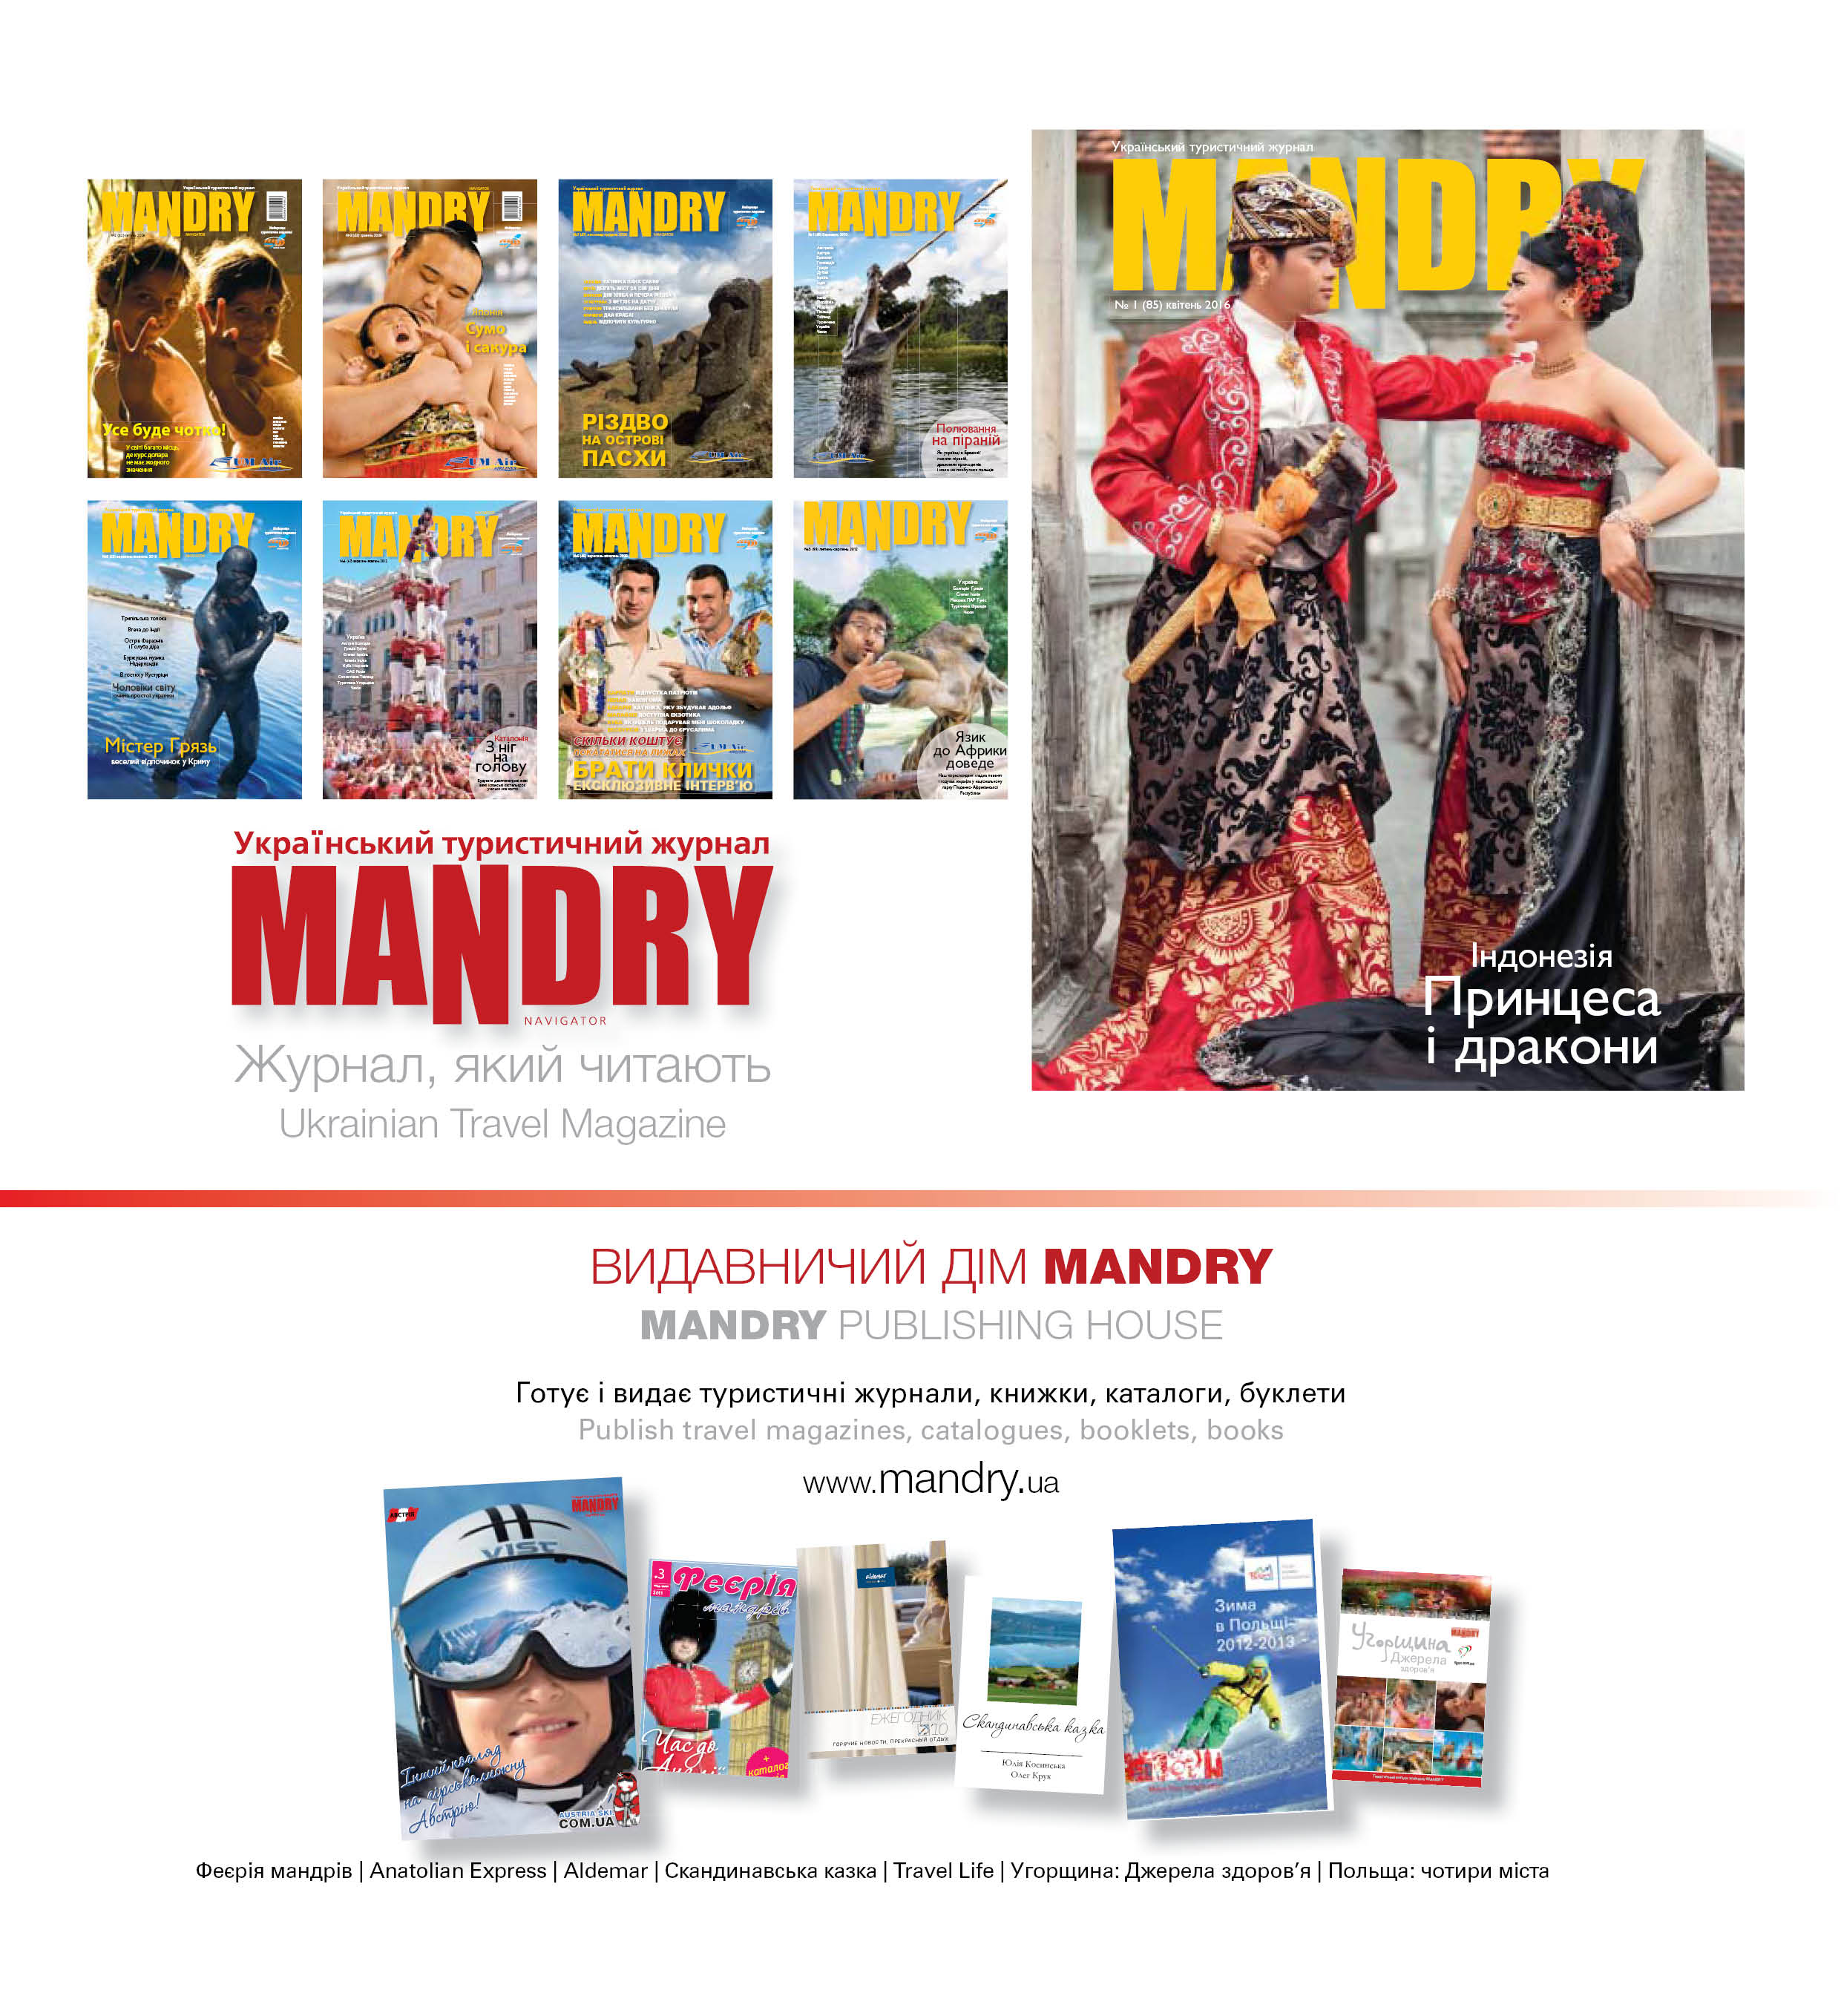 mandry-press-kit-2016-1